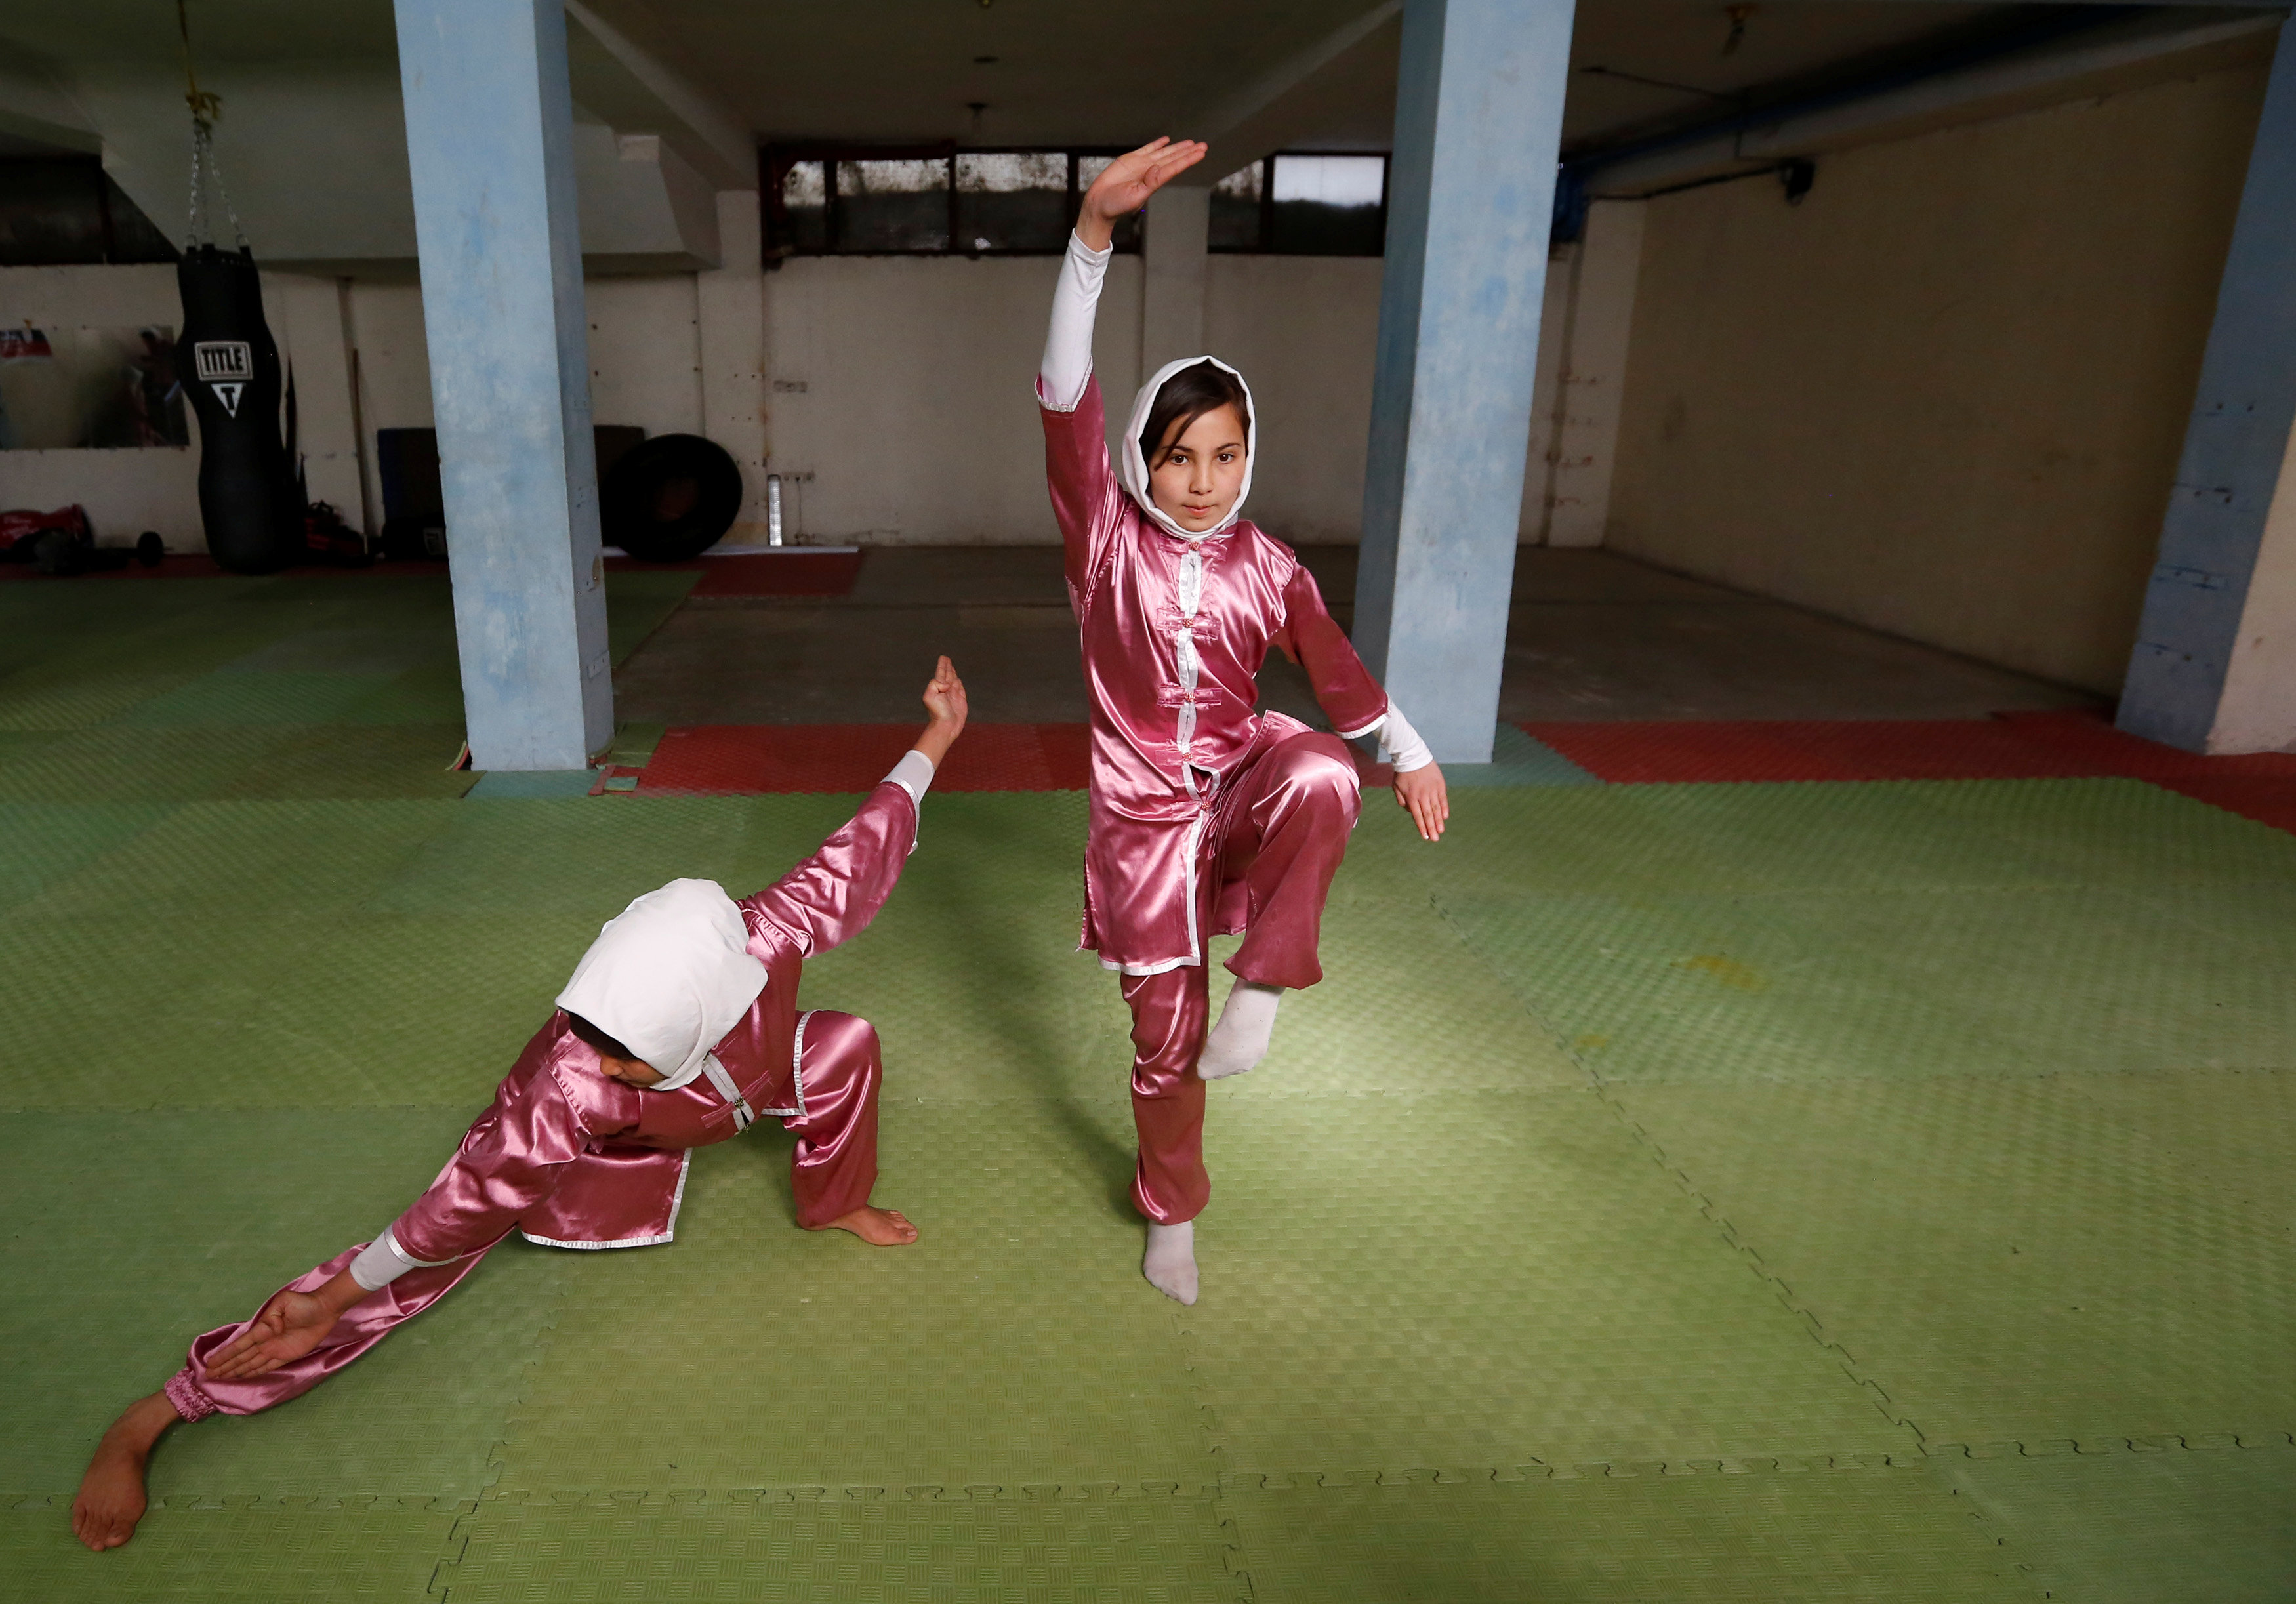 Mena Azimi (R), 15, practices at the Shaolin Wushu club in Kabul, Afghanistan January 19, 2017. REUTERS/Mohammad Ismail